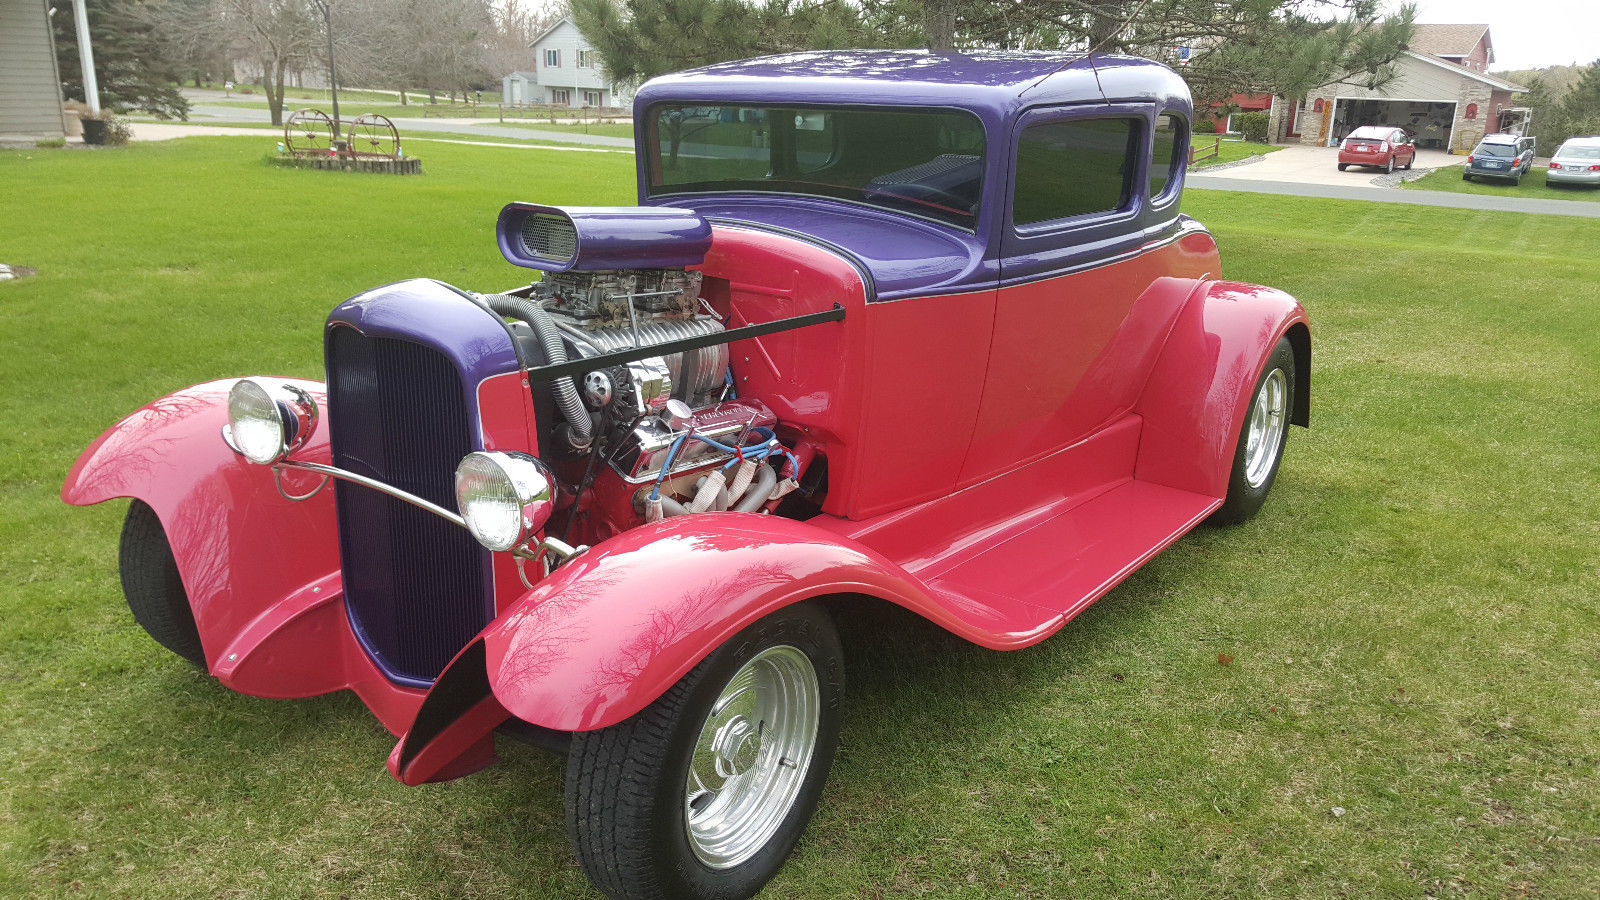 laser straight 1932 ford model a 5 window coupe hot rod. Black Bedroom Furniture Sets. Home Design Ideas